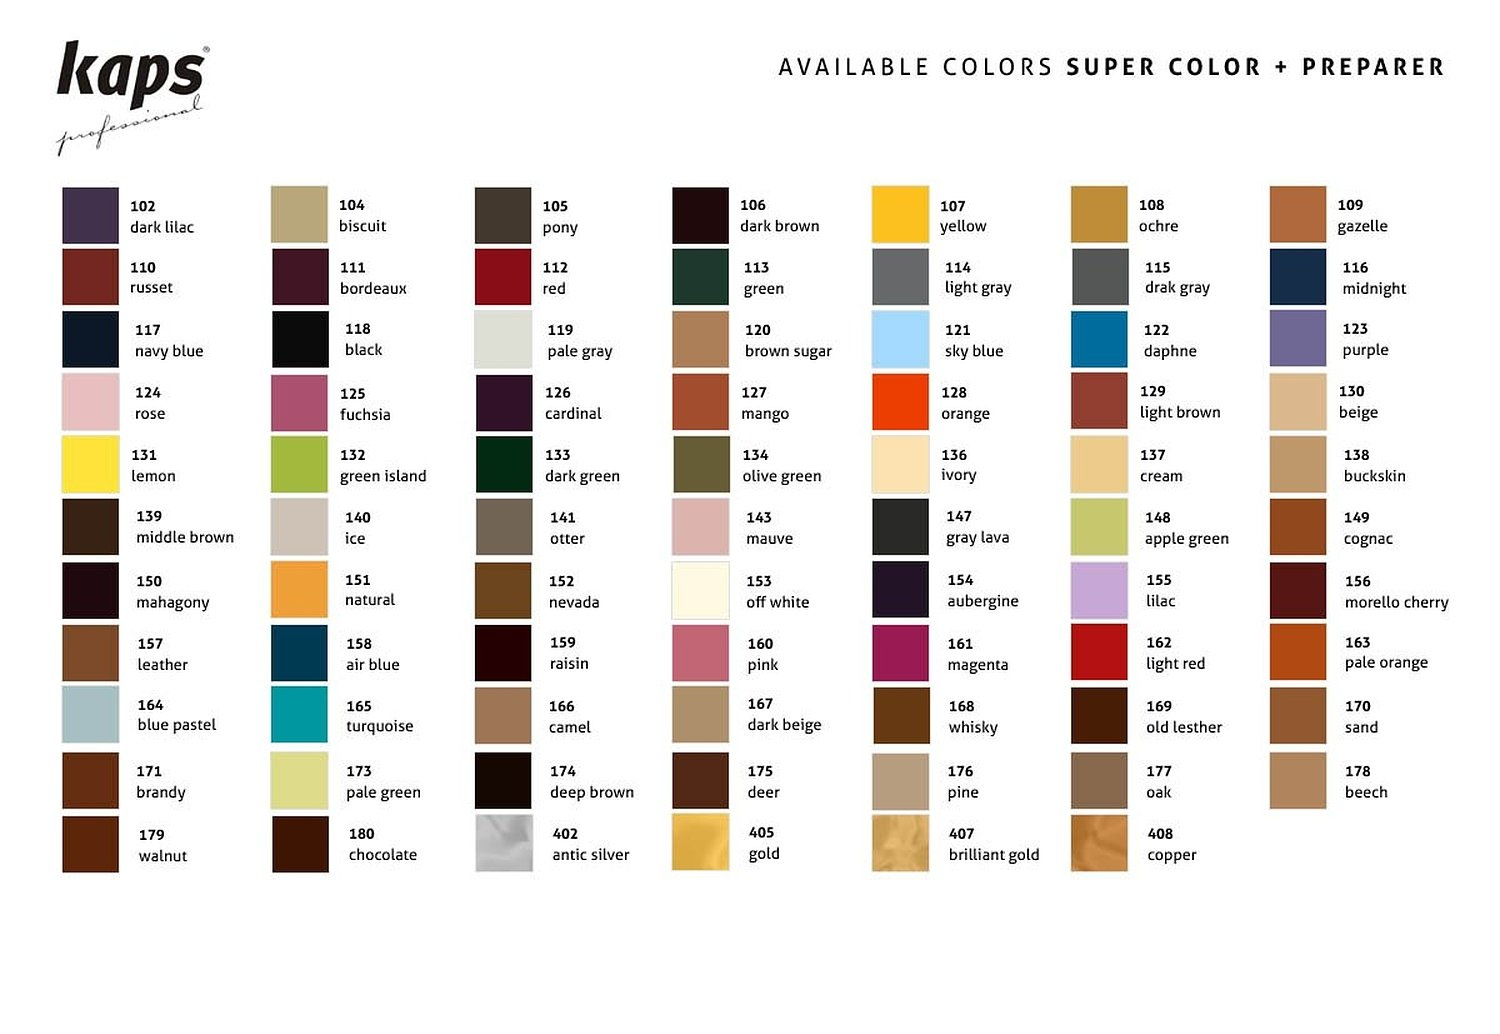 Kaps Super Color And Preparer Dye With Primer For Natural And Synthetic Leather Shoes 70 colors